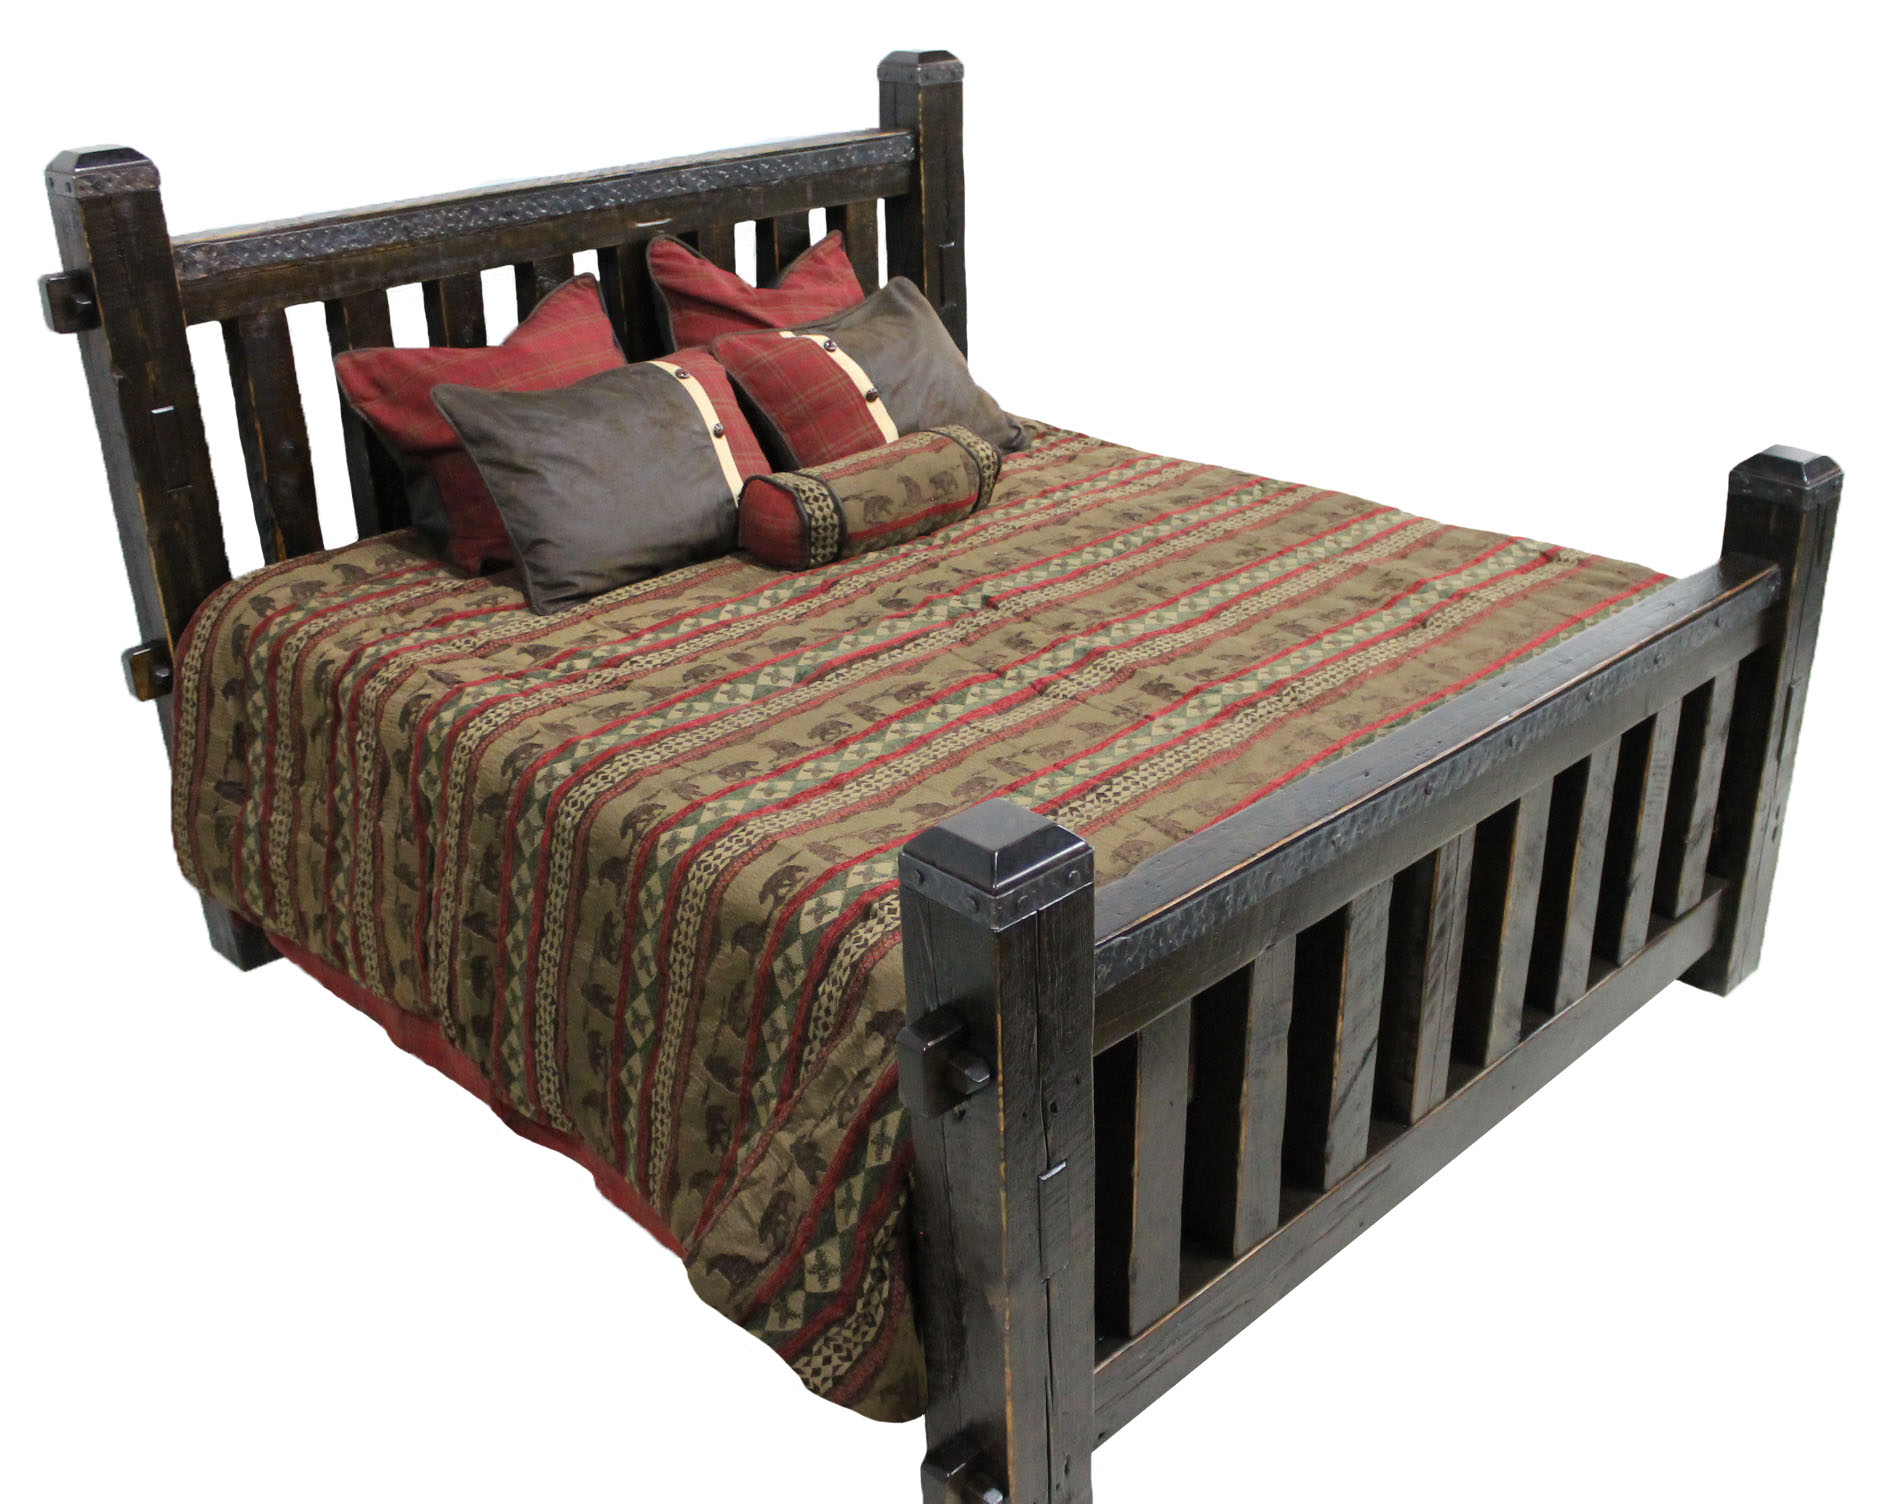 BED-CUSTOM ARMSTRONG IRON MOUNTAIN CUSTOM KING DARK STAINED.JPG